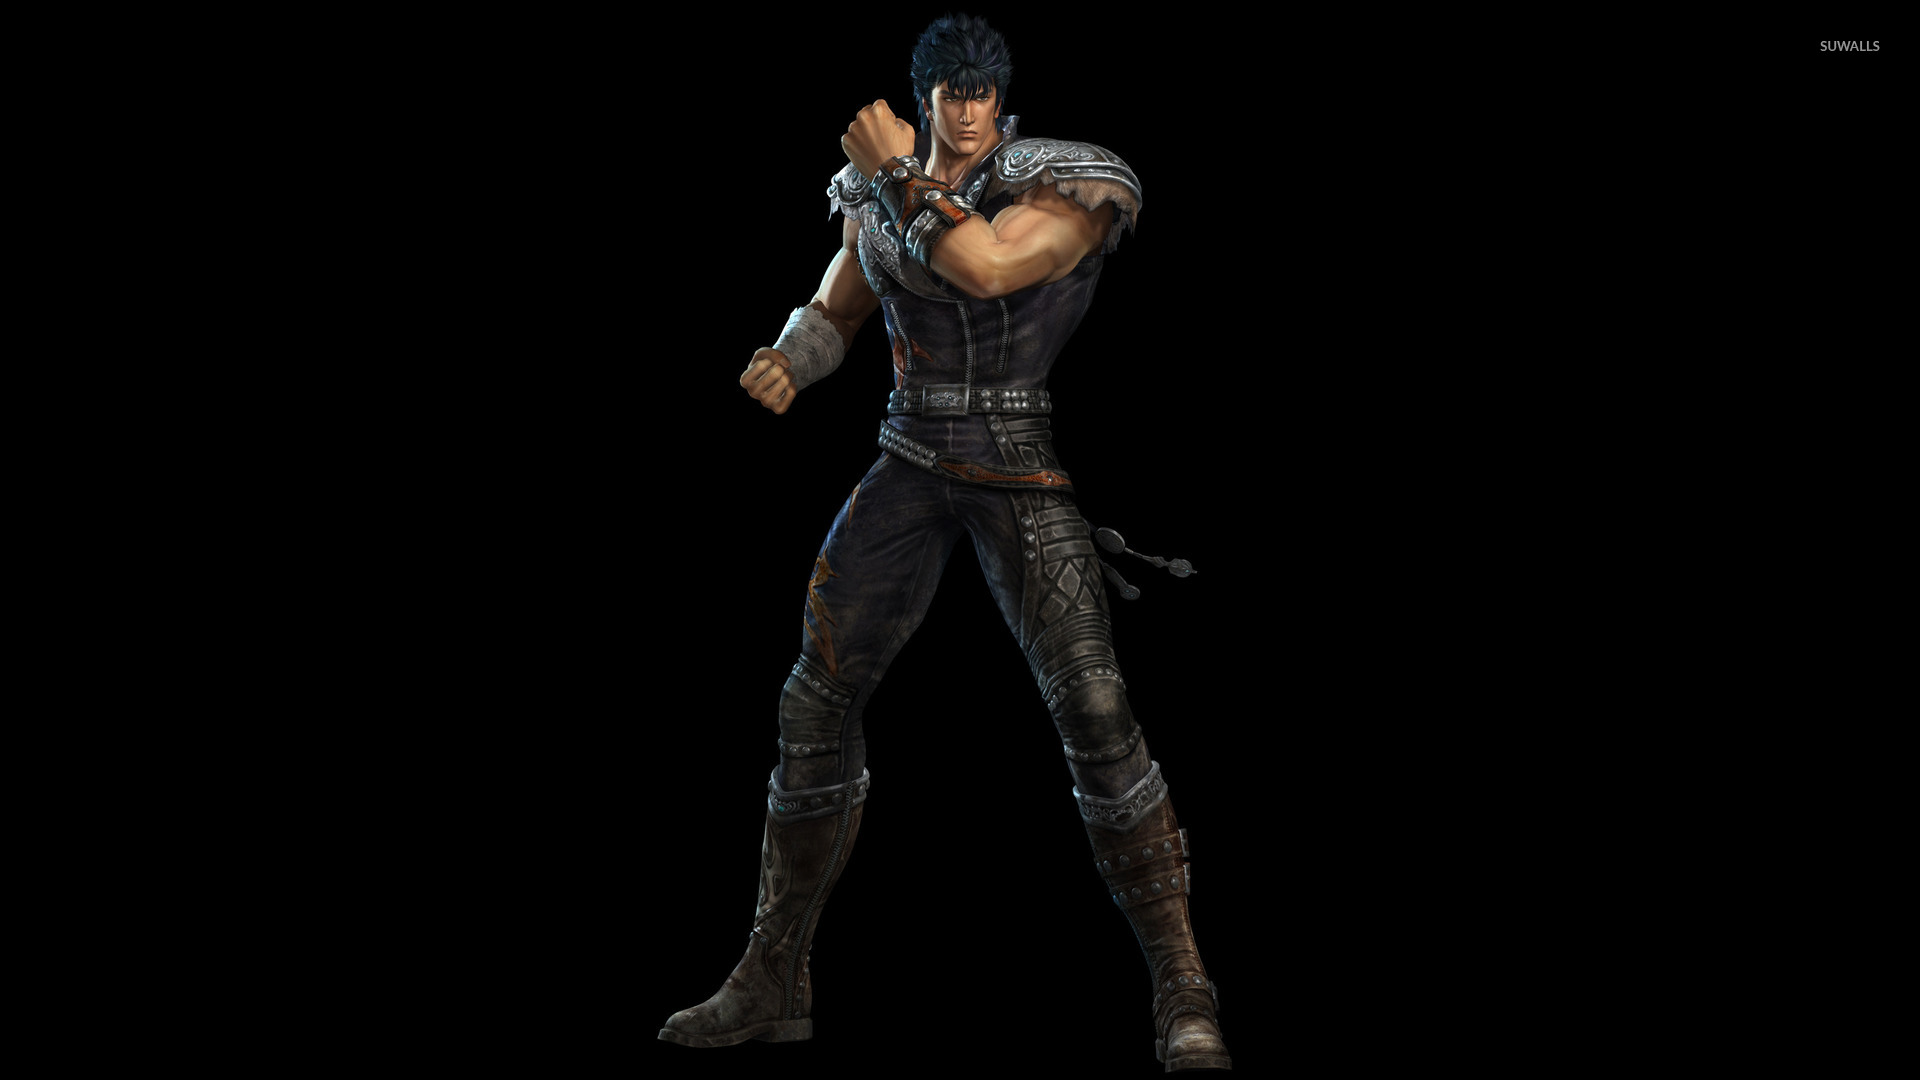 Kenshiro Fist Of The North Star Ken S Rage 2 Wallpaper 771668